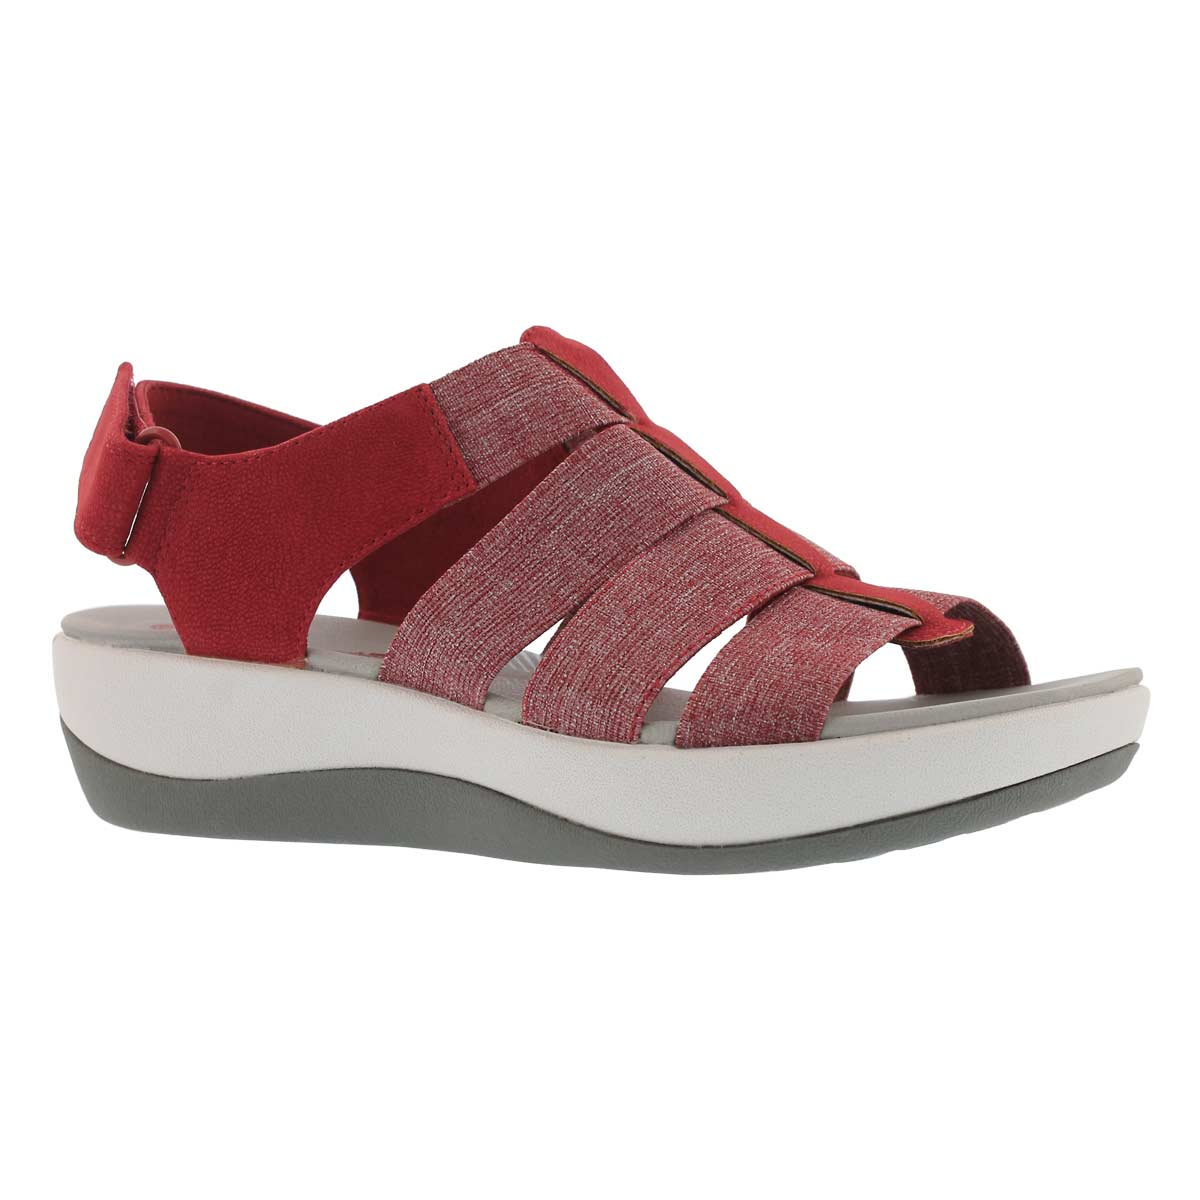 Women's ARLA SHAYLIE red casual wedge sandals